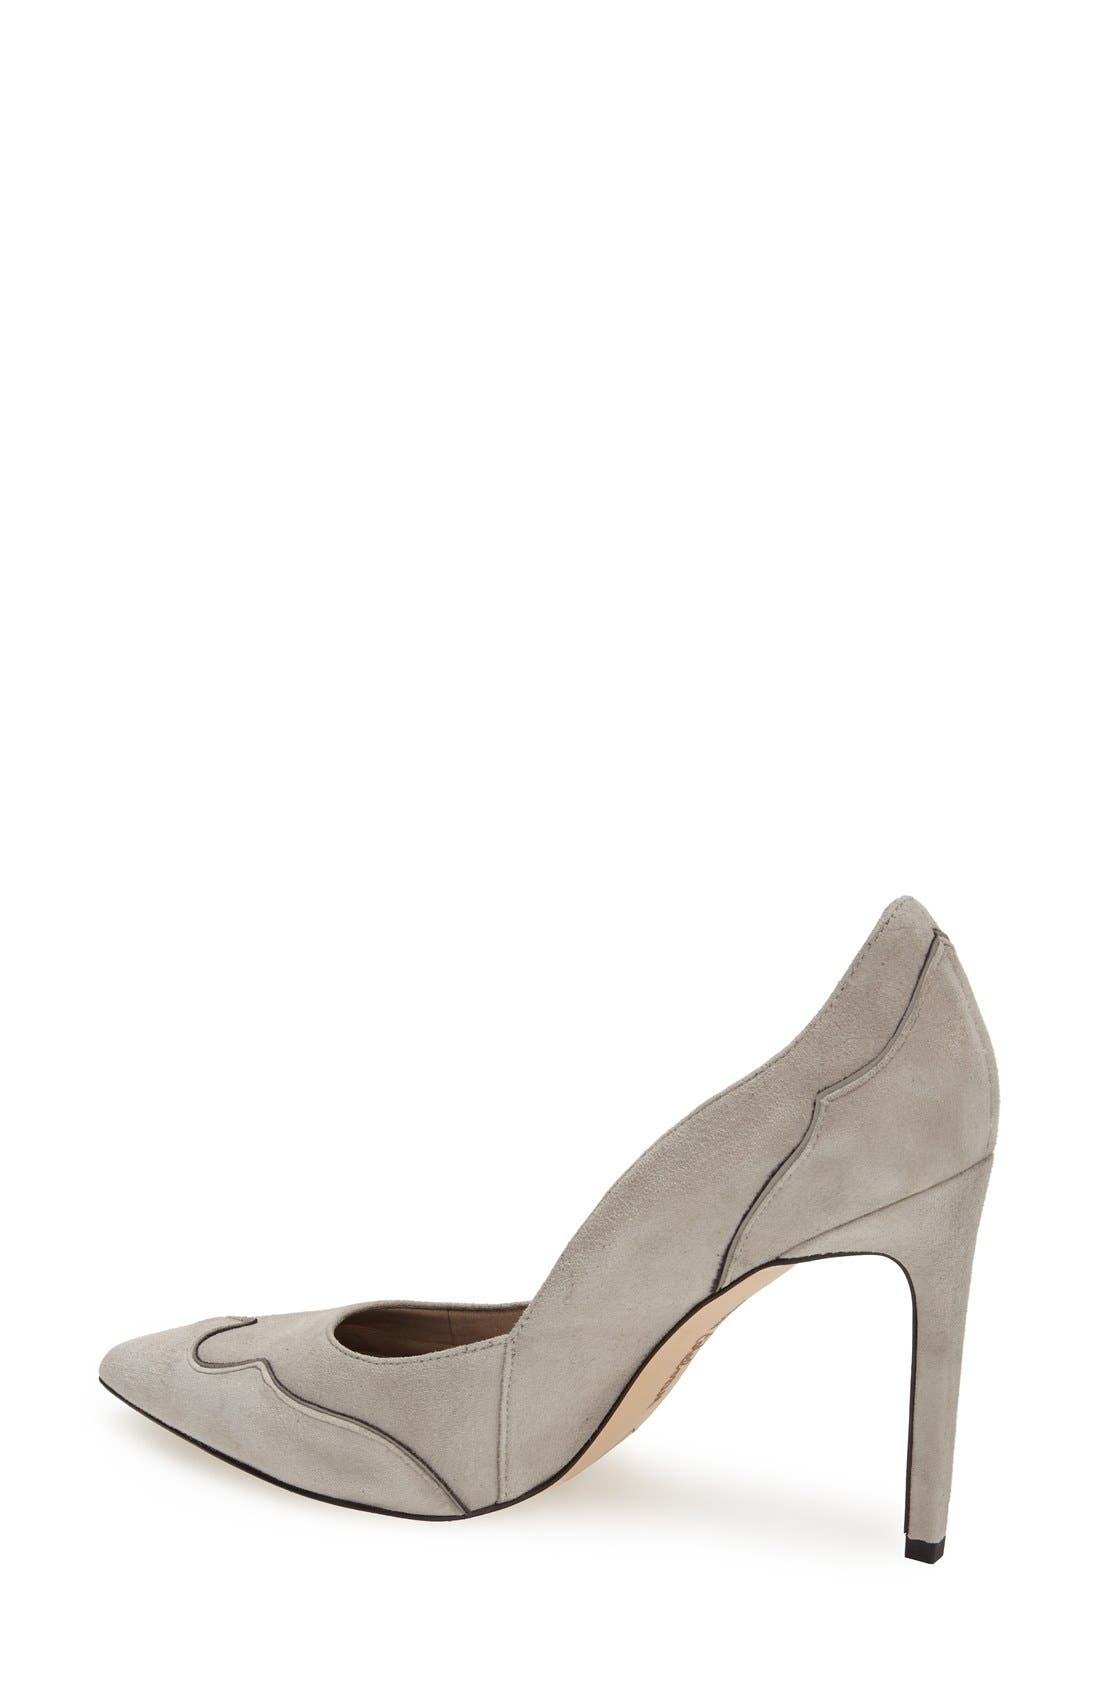 'Dixie' Suede Pointy Toe Pump,                             Alternate thumbnail 2, color,                             Winter Sky